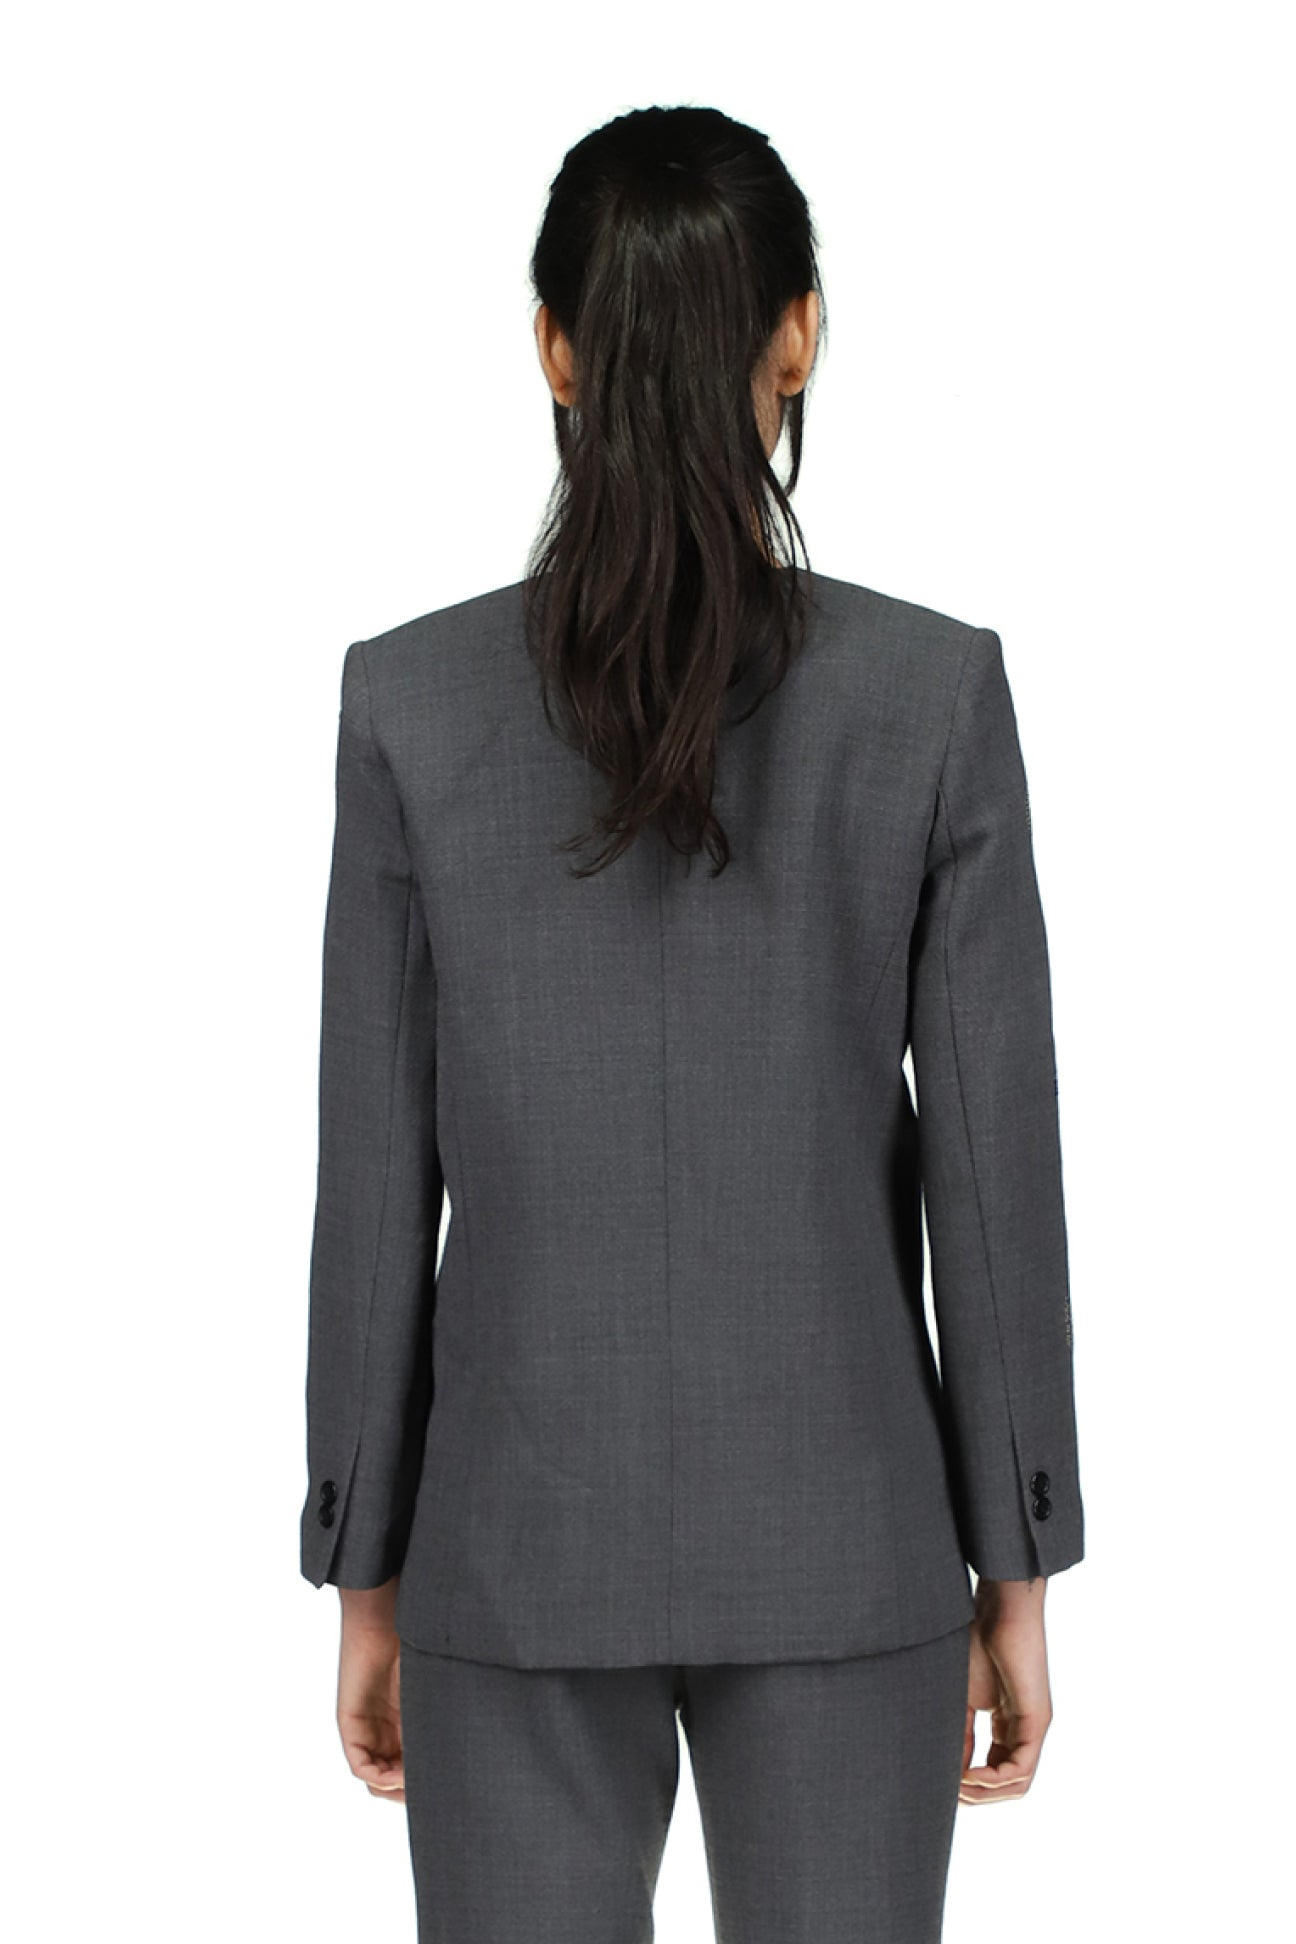 '19th Century Sampler' V Neck Blazer - Spring 2021 - Libertine